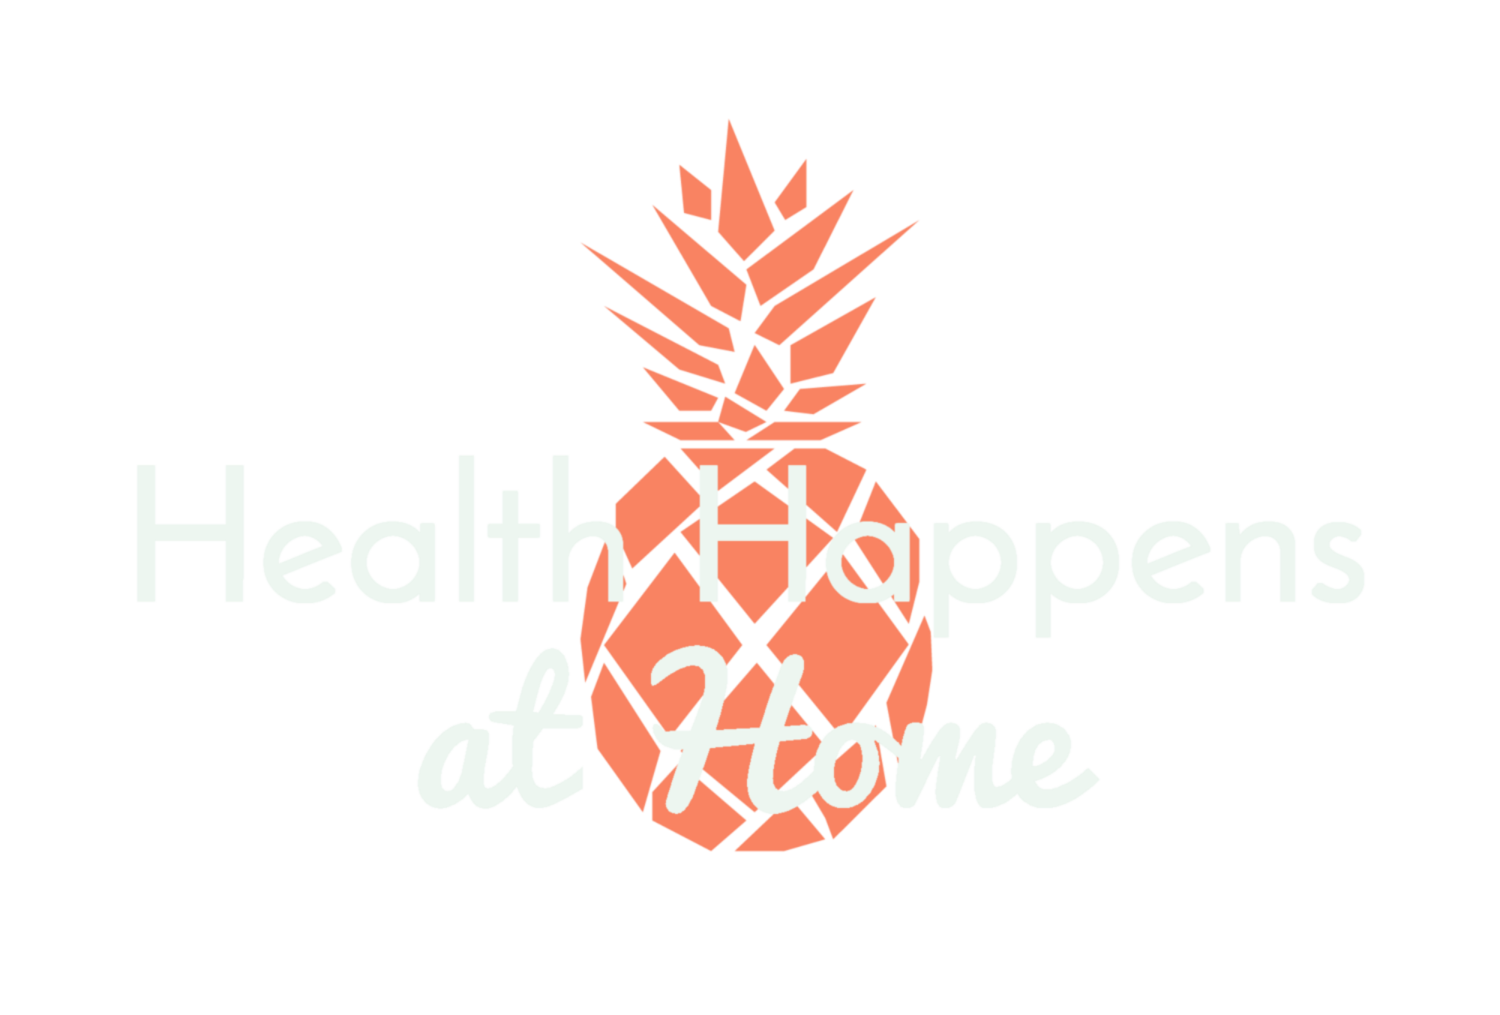 Health Happens at Home